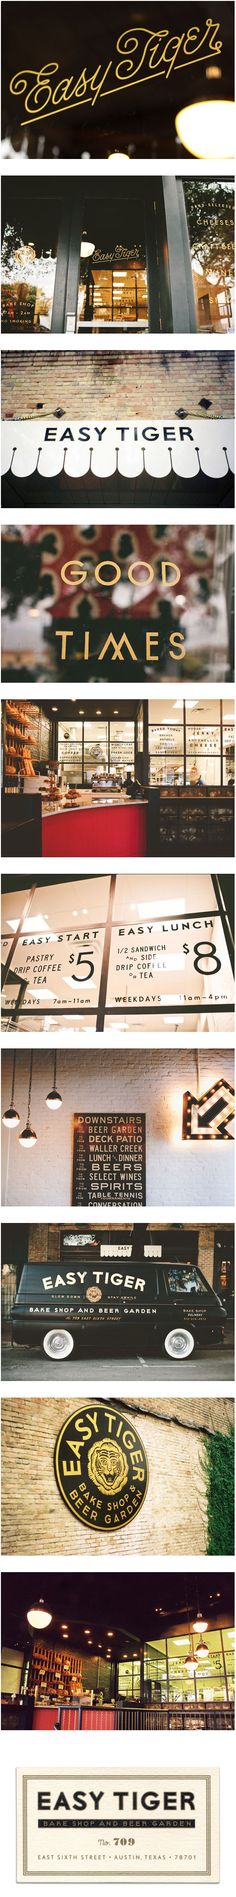 LAND: Easy Tiger Identity and Collateral | Design Work Life